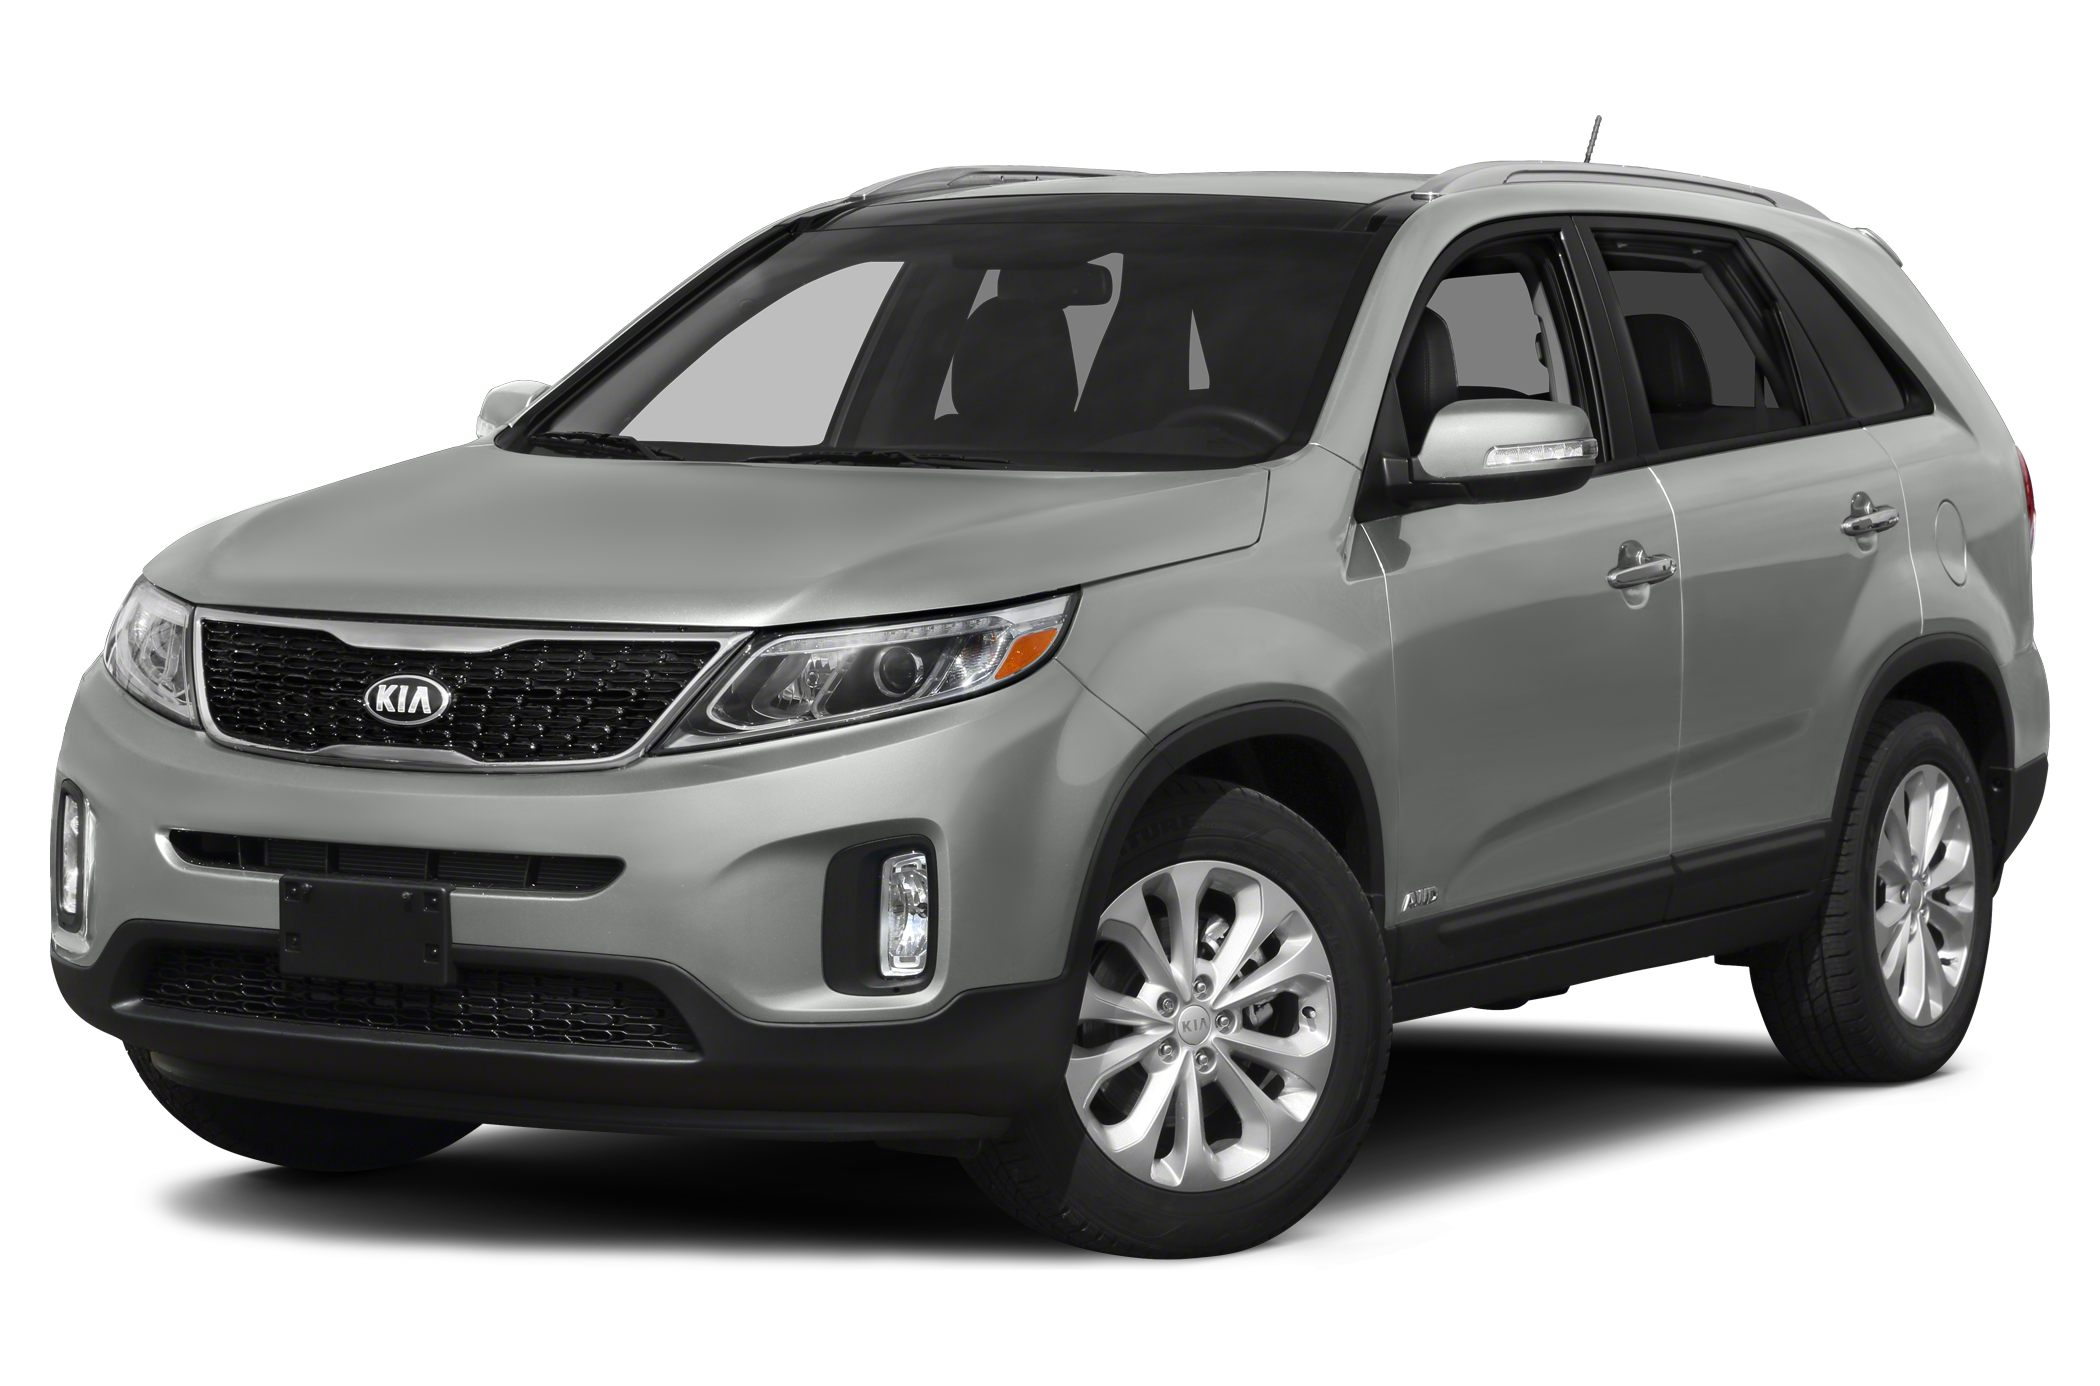 2015 Kia Sorento LX AWDKeyless Entry Satellite CD with MP3 and Steering Wheel Controls Power Wi